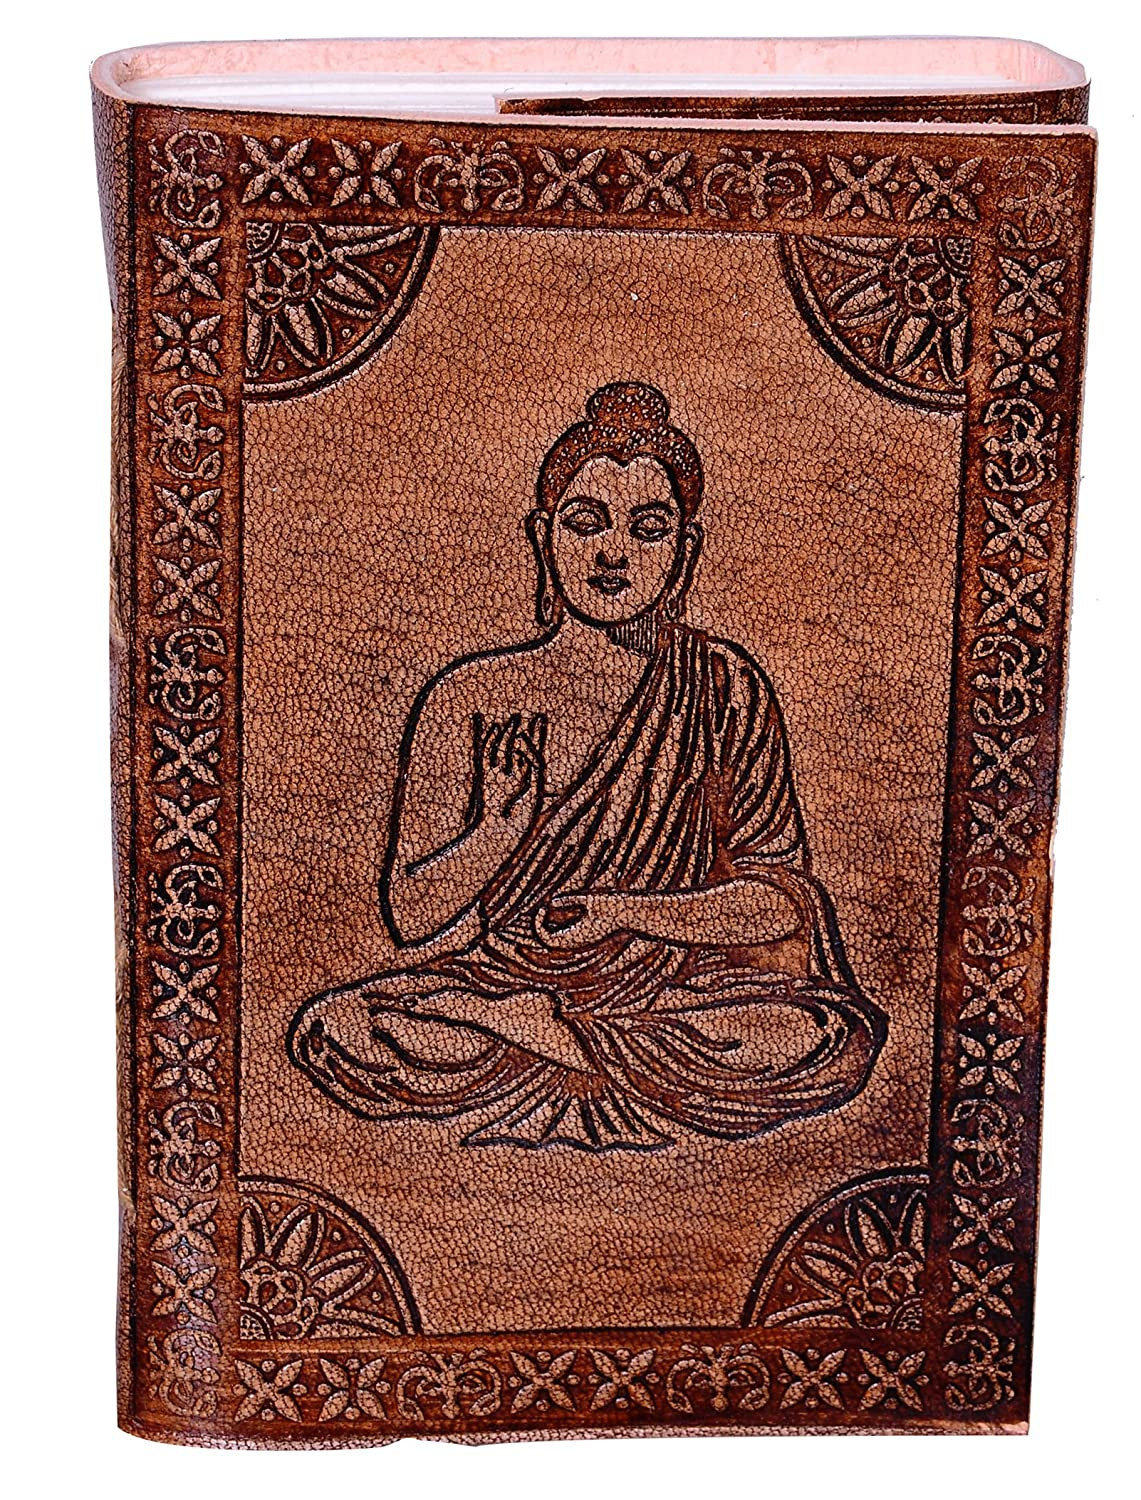 Travel Journal Notebook Meditating Buddha: Naturally Treated Paper Encased In Leather Cover For Corporate Gift Or Personal Memoir 10527 Purpledip Vintage Diary